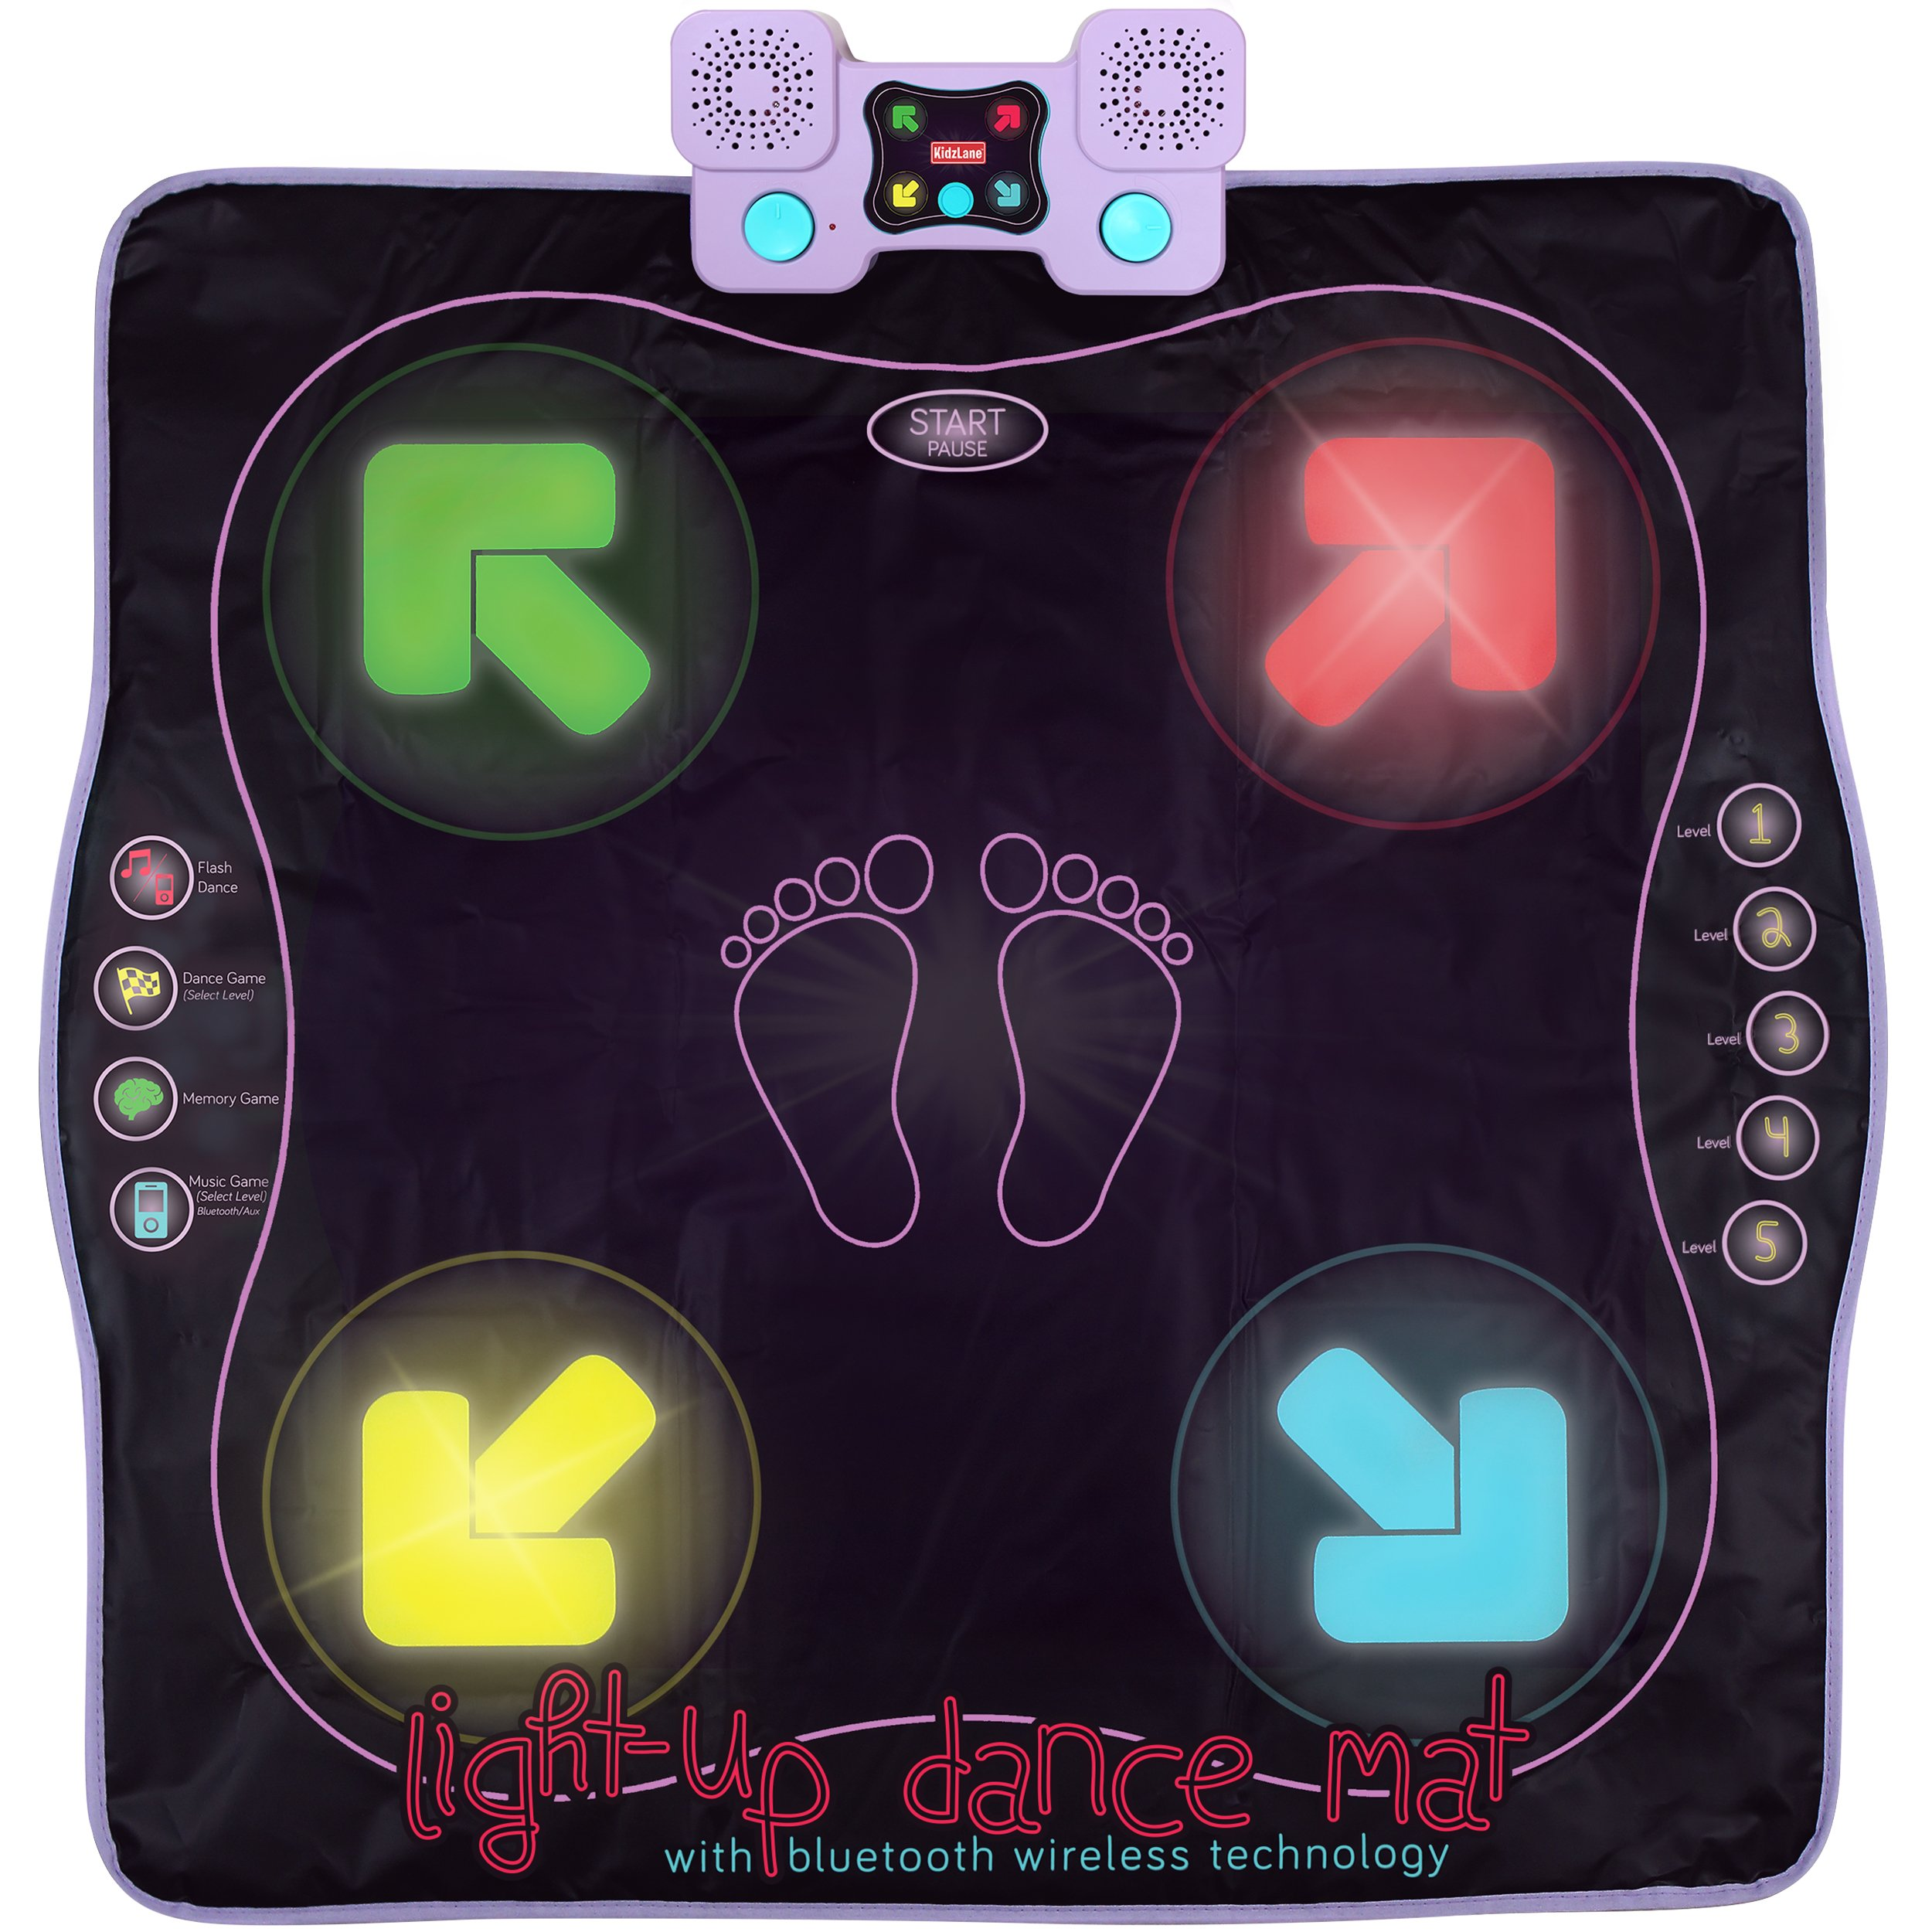 Light Up Dance Mat - Arcade Style Dance Games with Built In Music Tracks and Bluetooth Wireless Technology